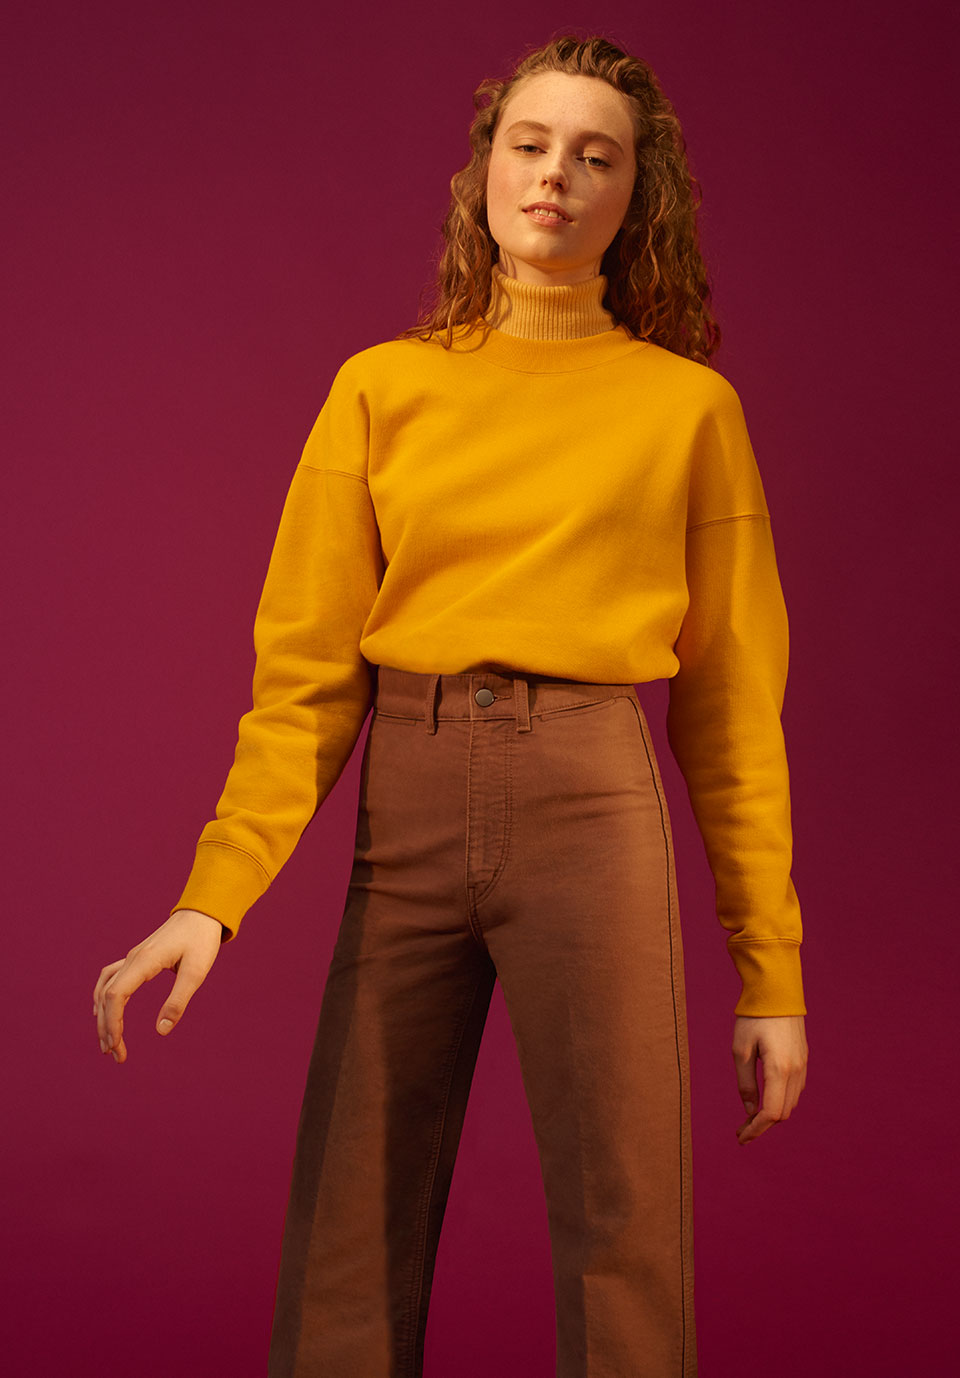 UNIQLO U by CHRISTOPHE LEMAIRE  LOOKBOOK IMAGE  FALL/ WINTER 2018